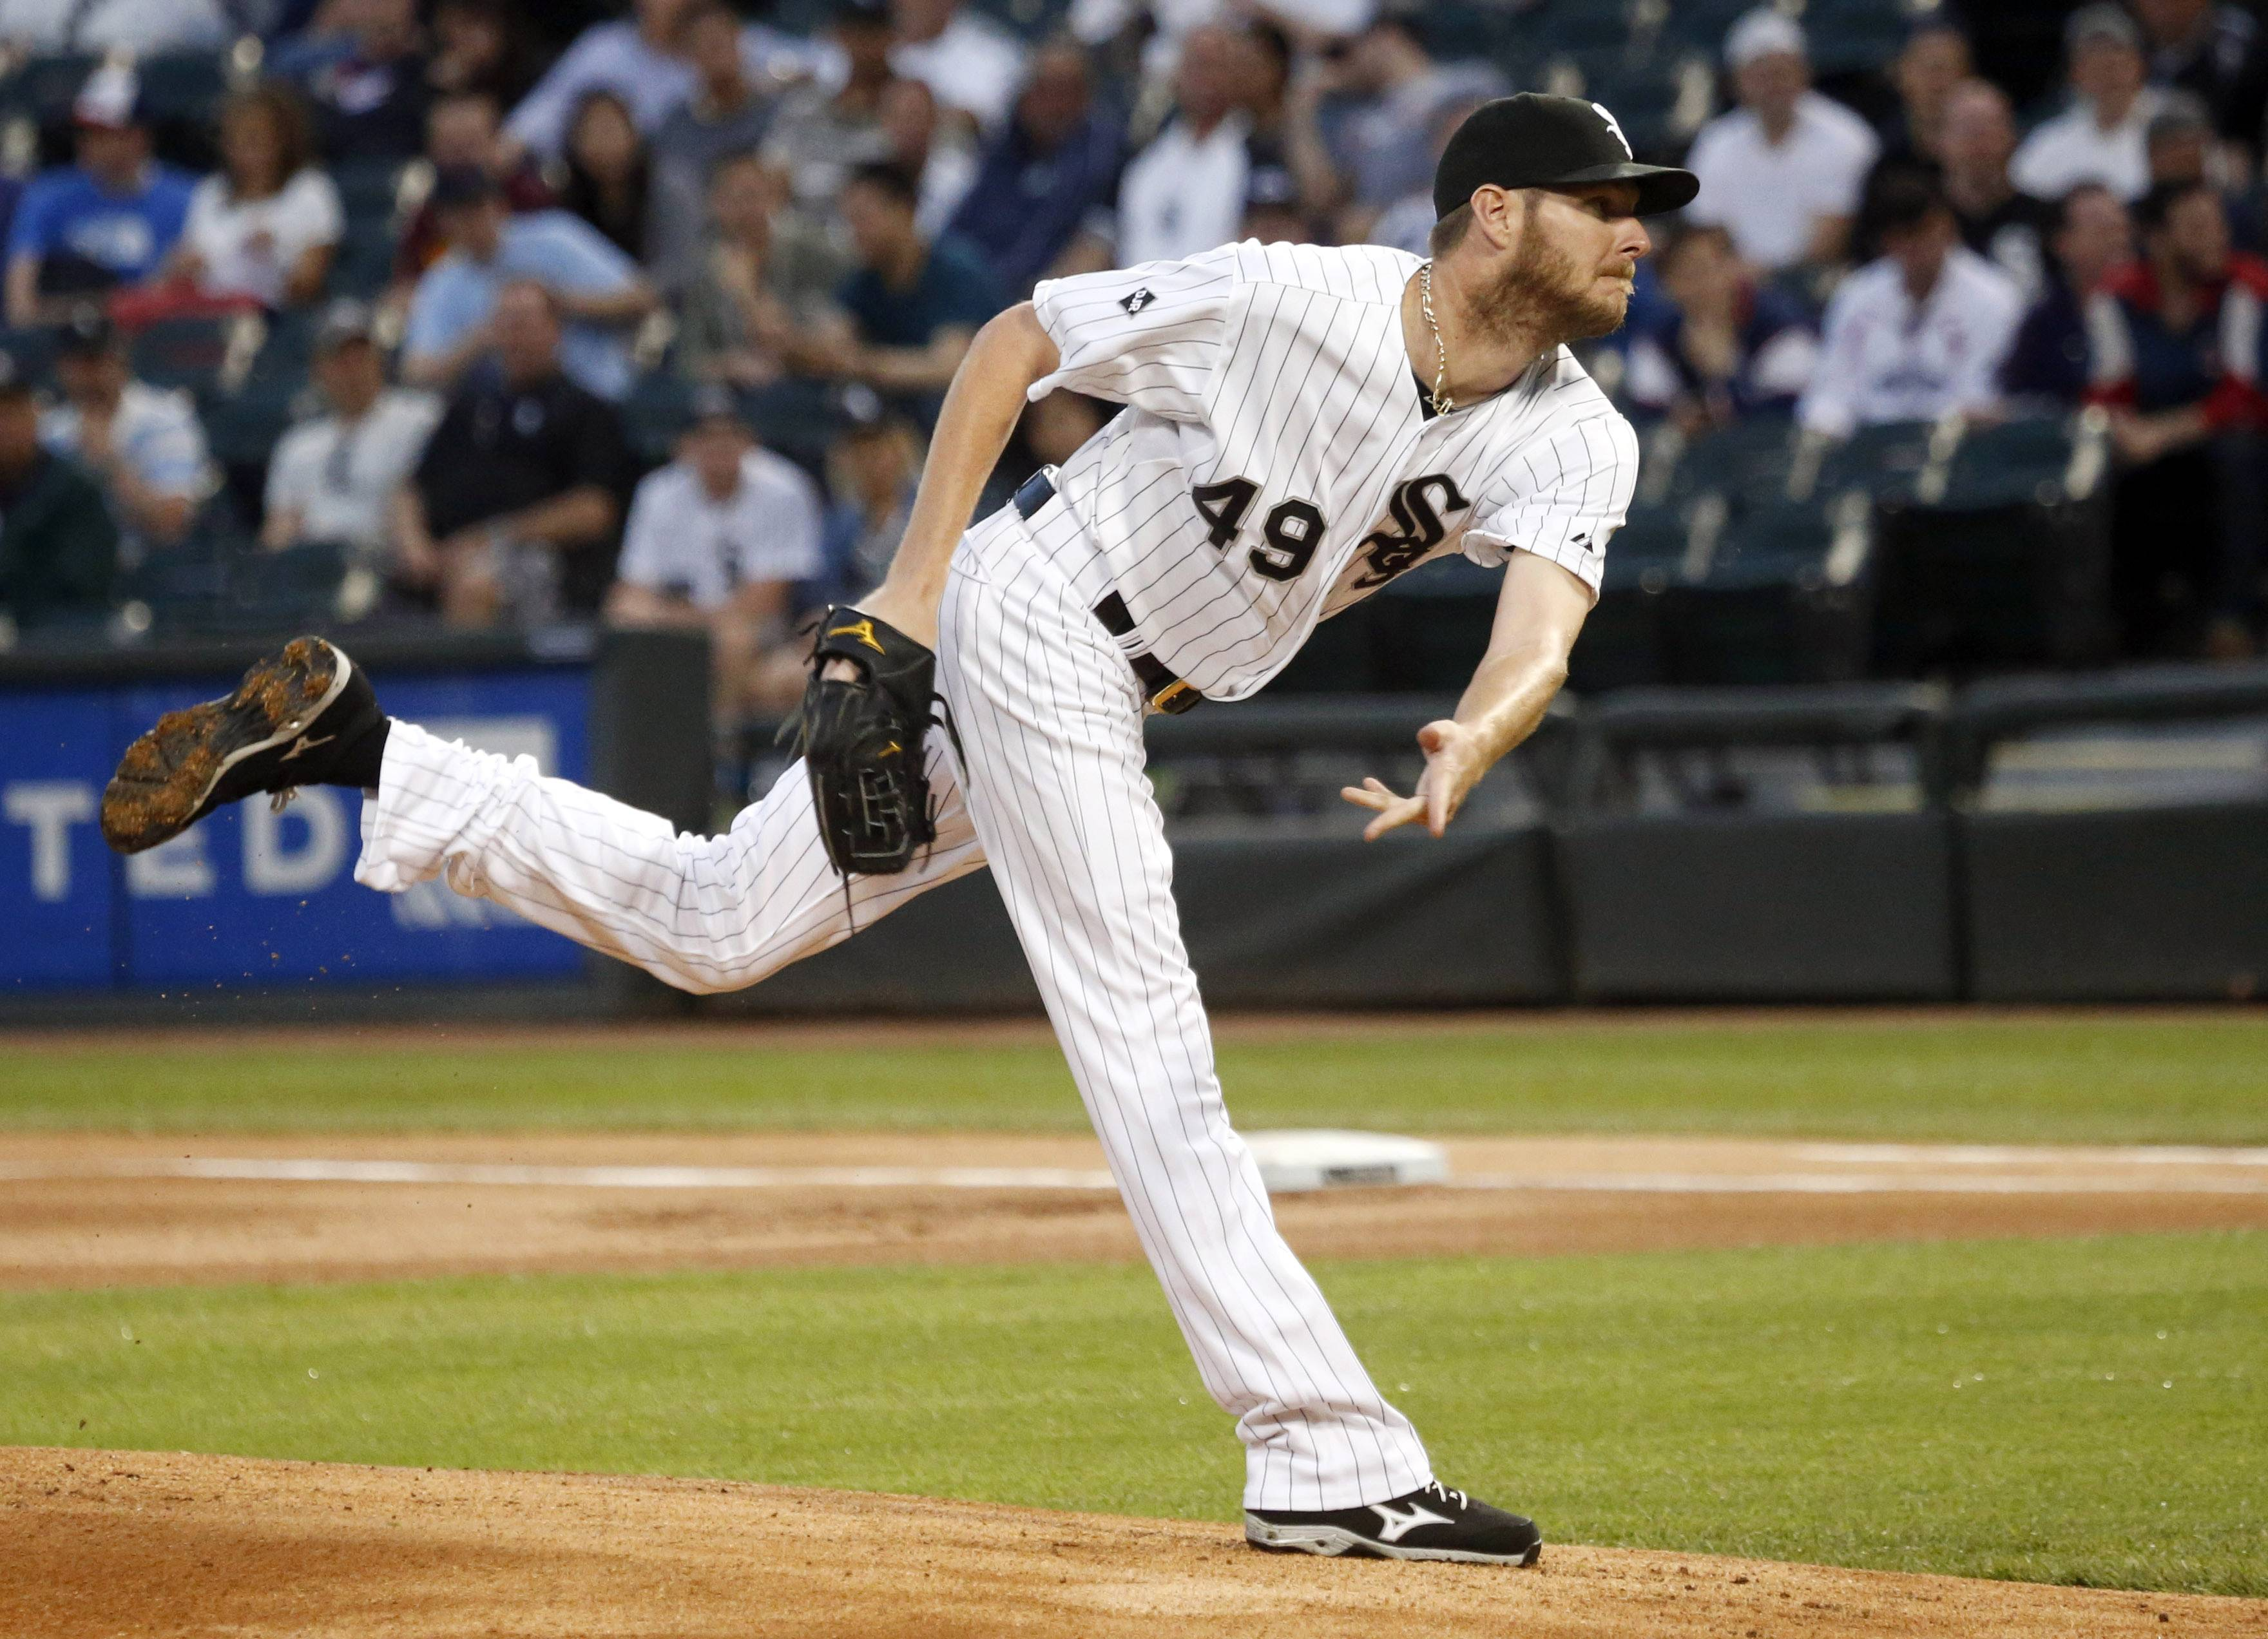 Chicago White Sox starting pitcher Chris Sale delivers during the first inning of a baseball game against the Cleveland Indians, Tuesday, May 27, 2014, in Chicago.